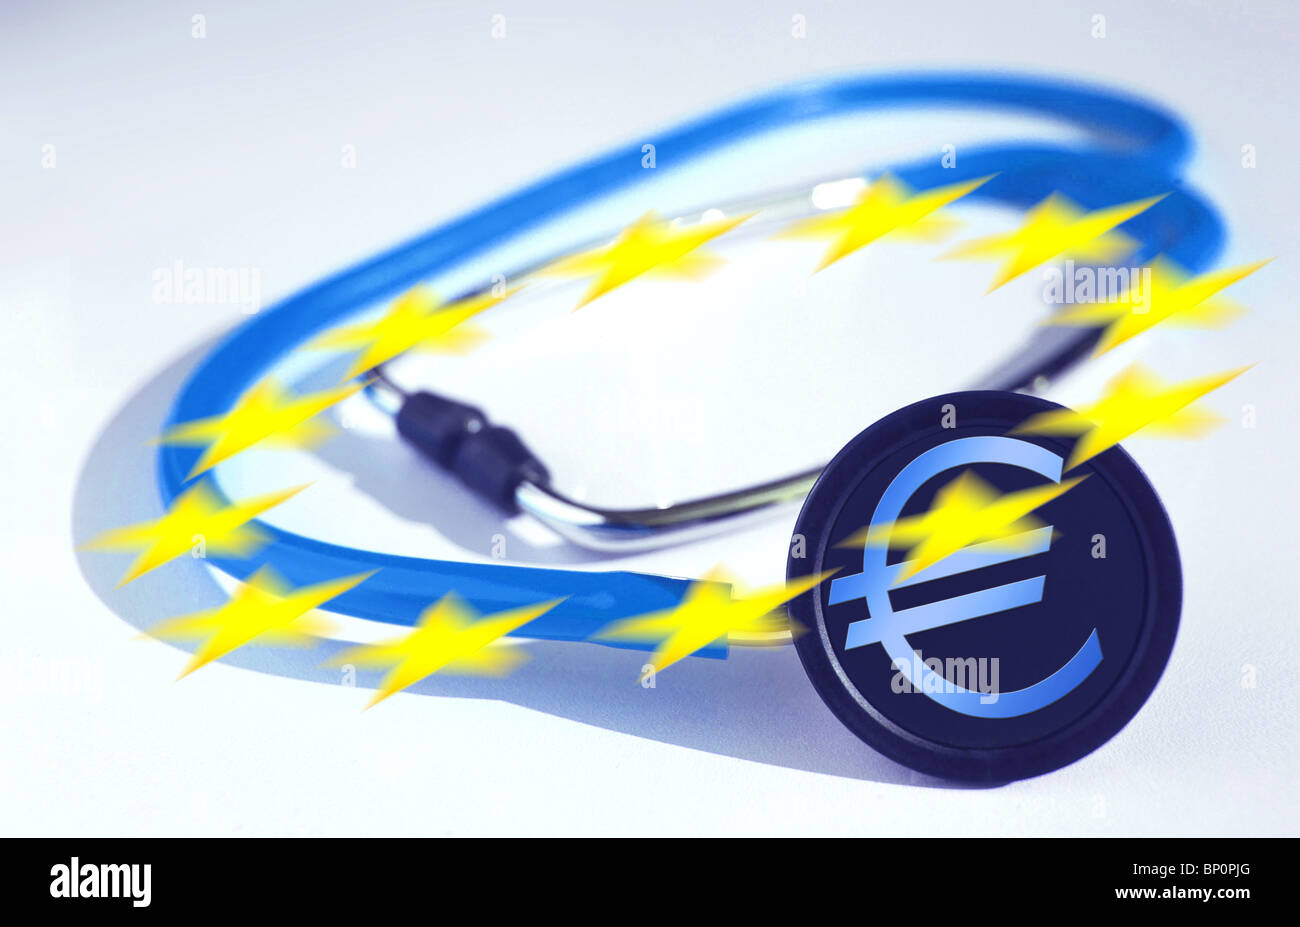 Stethoscope with Euro acronym, 12 stars of the European community flag - Stock Image